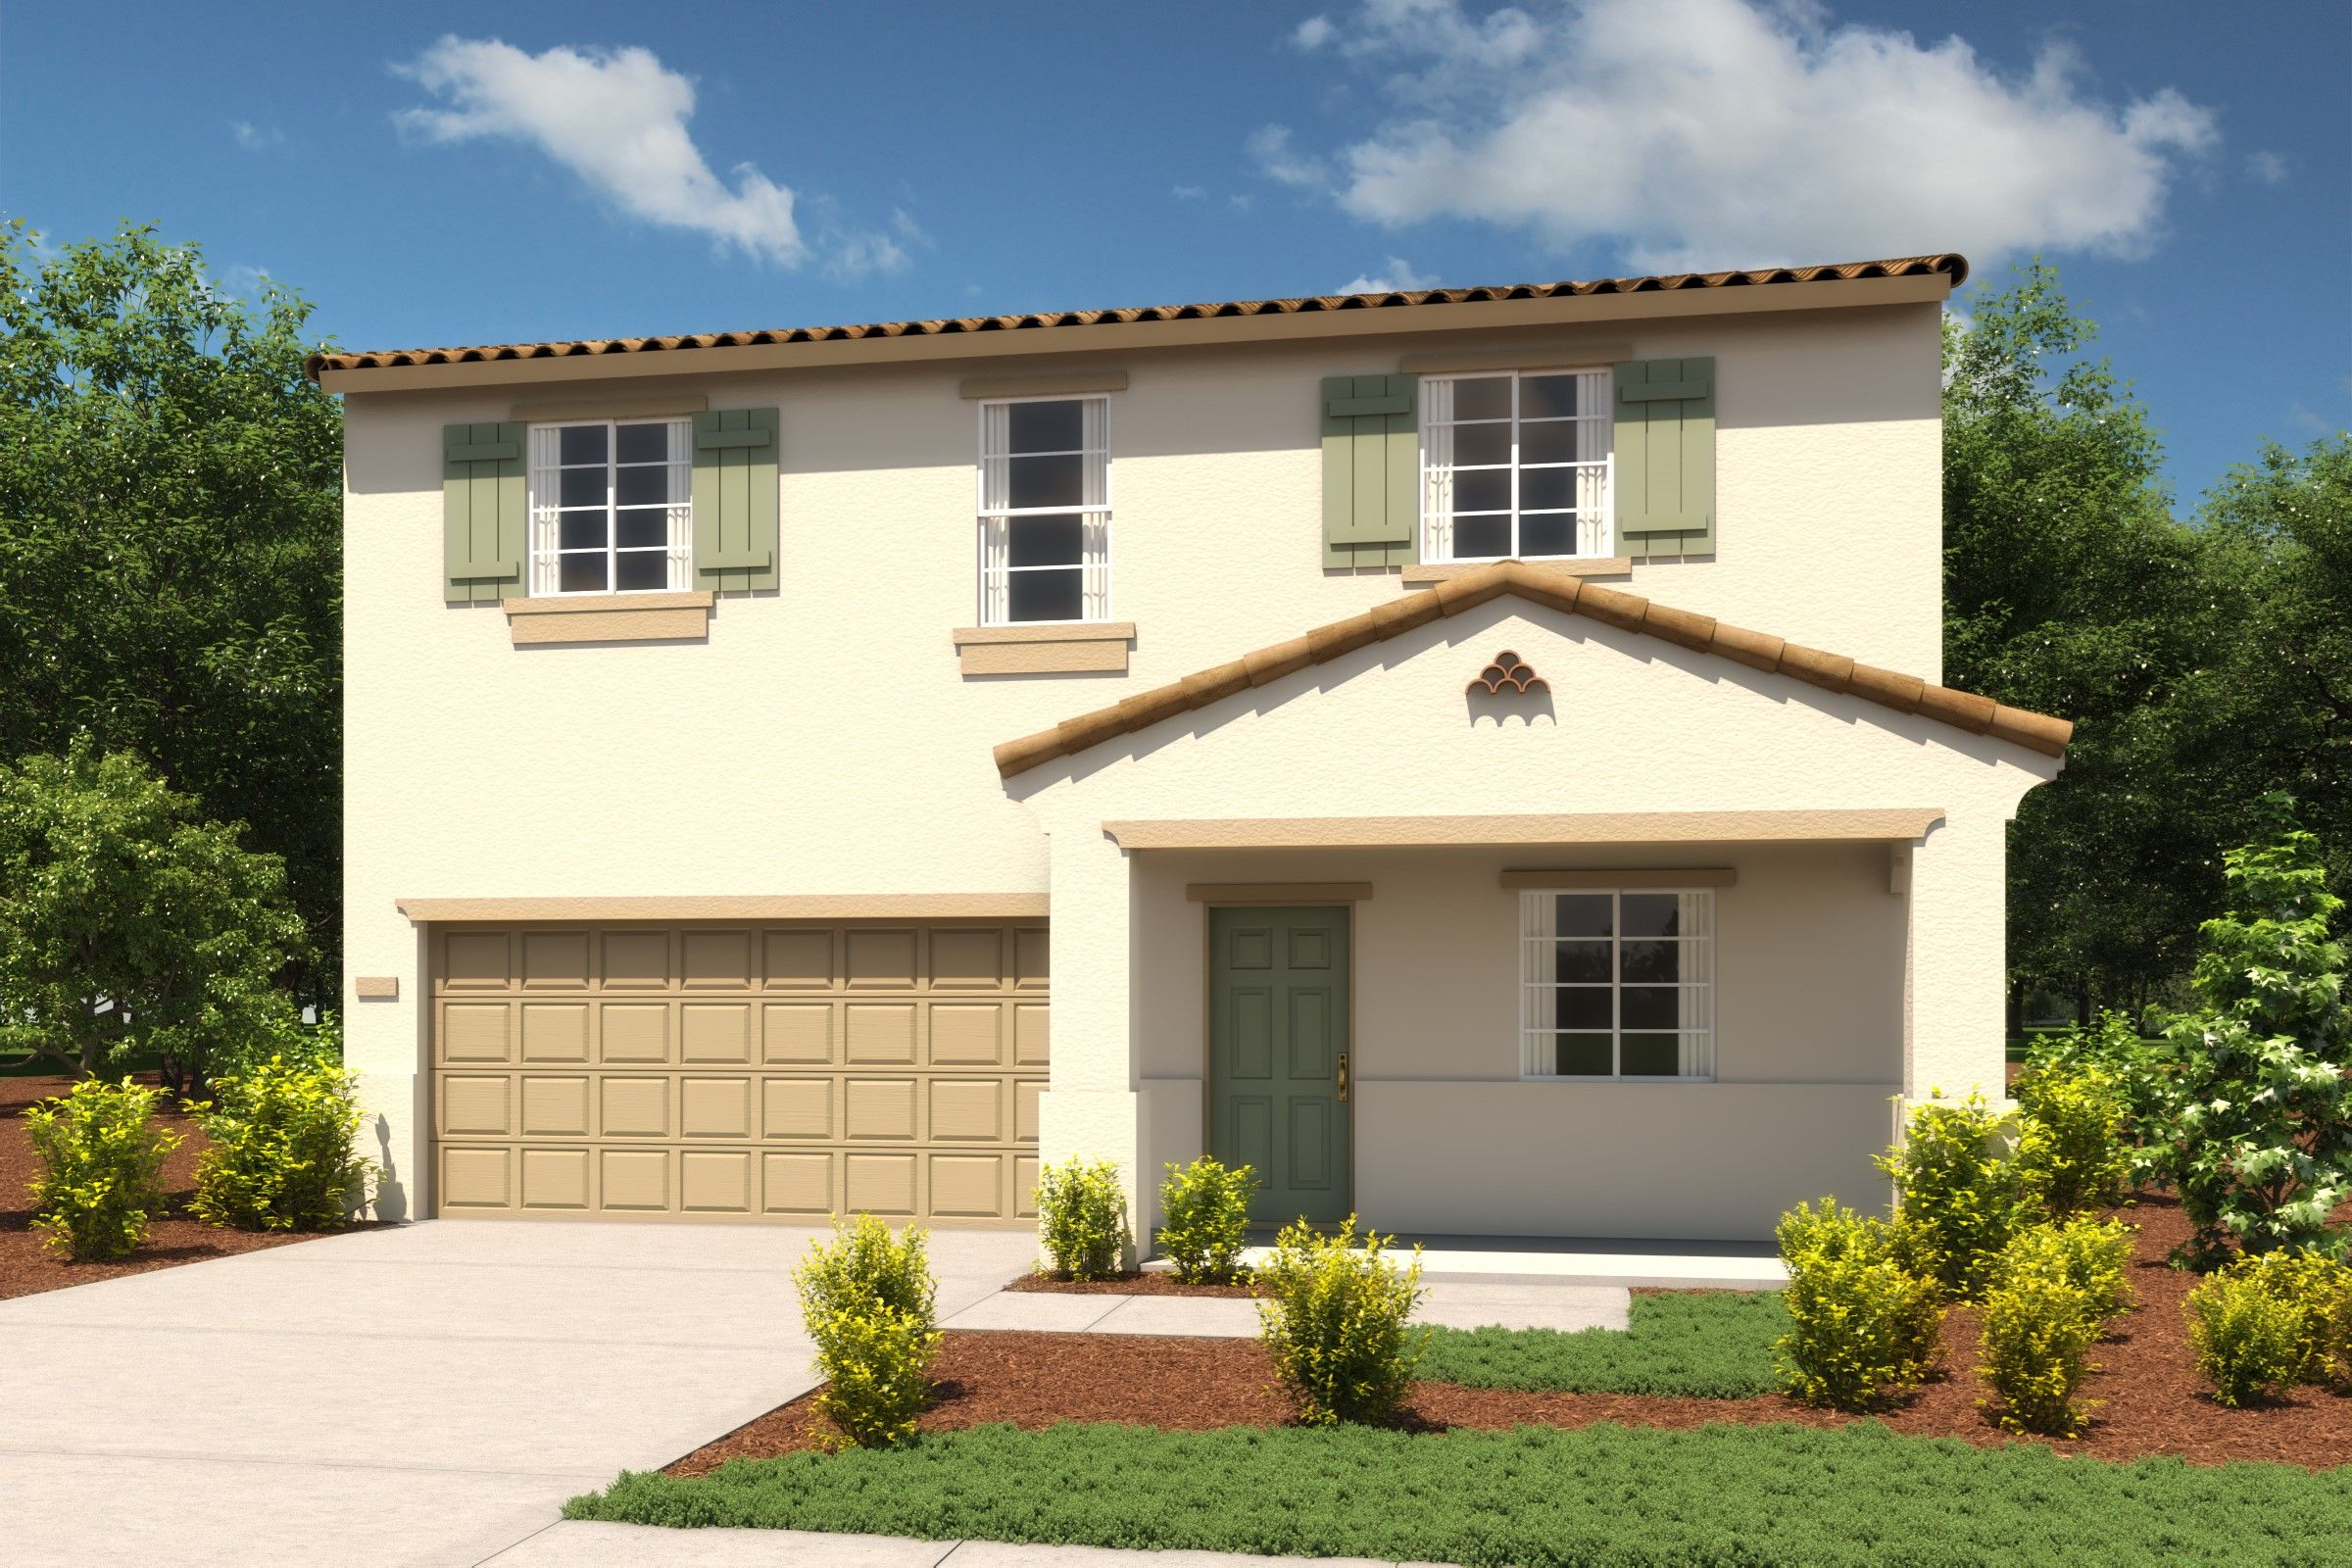 Single Family for Active at Aspire At Village Center - Primrose Emerald Park Lane And Village Plaza Drive Roseville, California 95747 United States